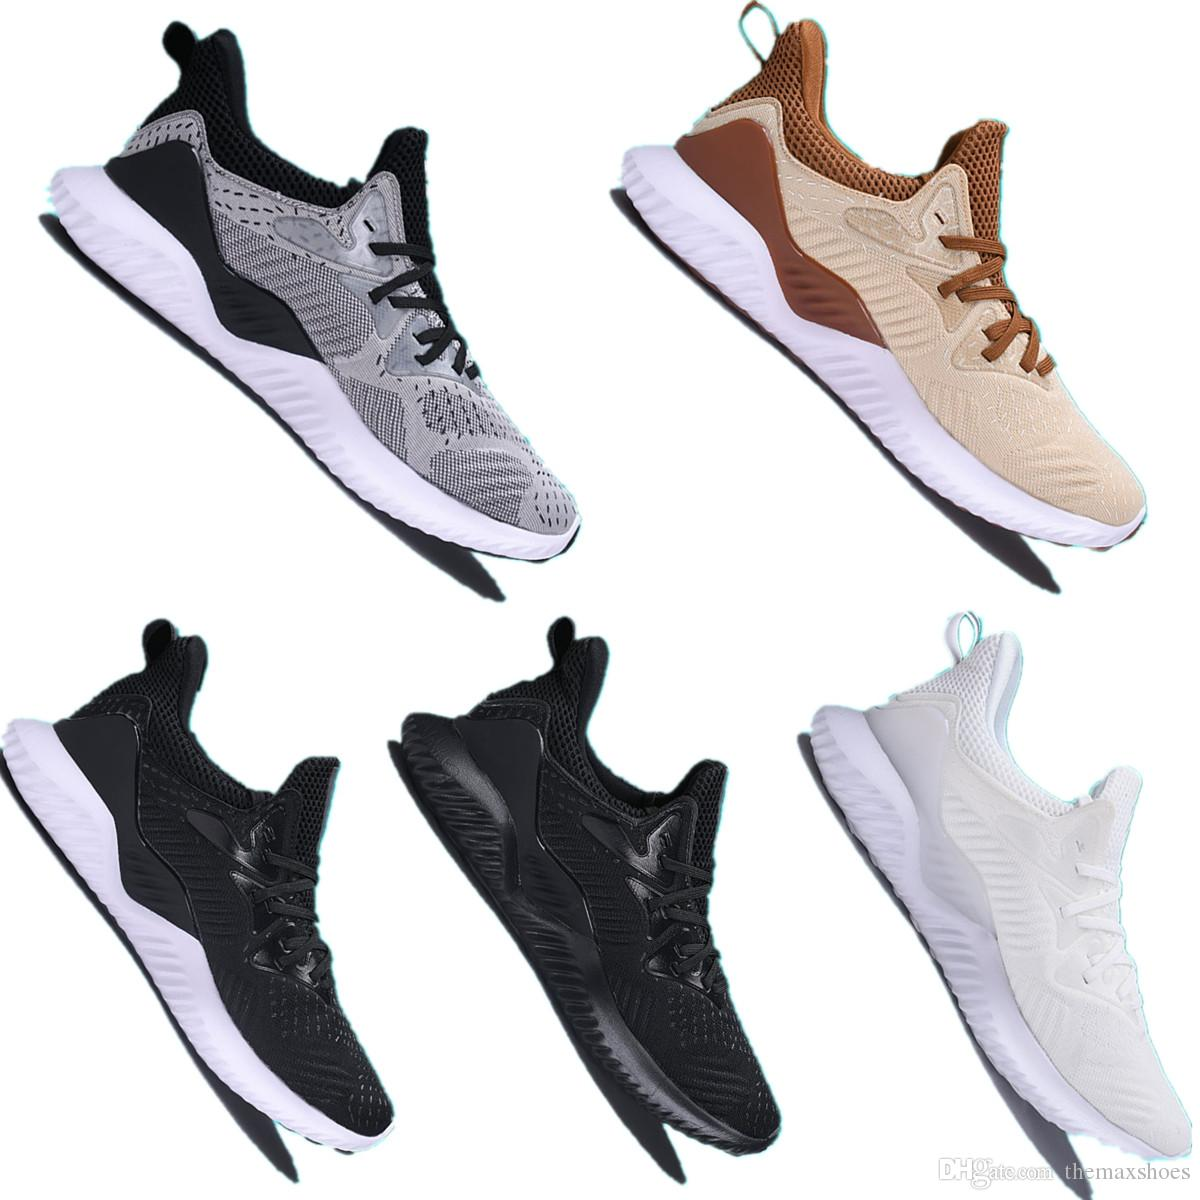 brand new 830df a80ad 2018 AlphaBounce Beyond High Marbles Shark Gills Outsole Running Shoes  Black Grey White Alpha Khaki Bounce Jogging Shoes Eur 36 45 Best Trail  Running Shoes ...